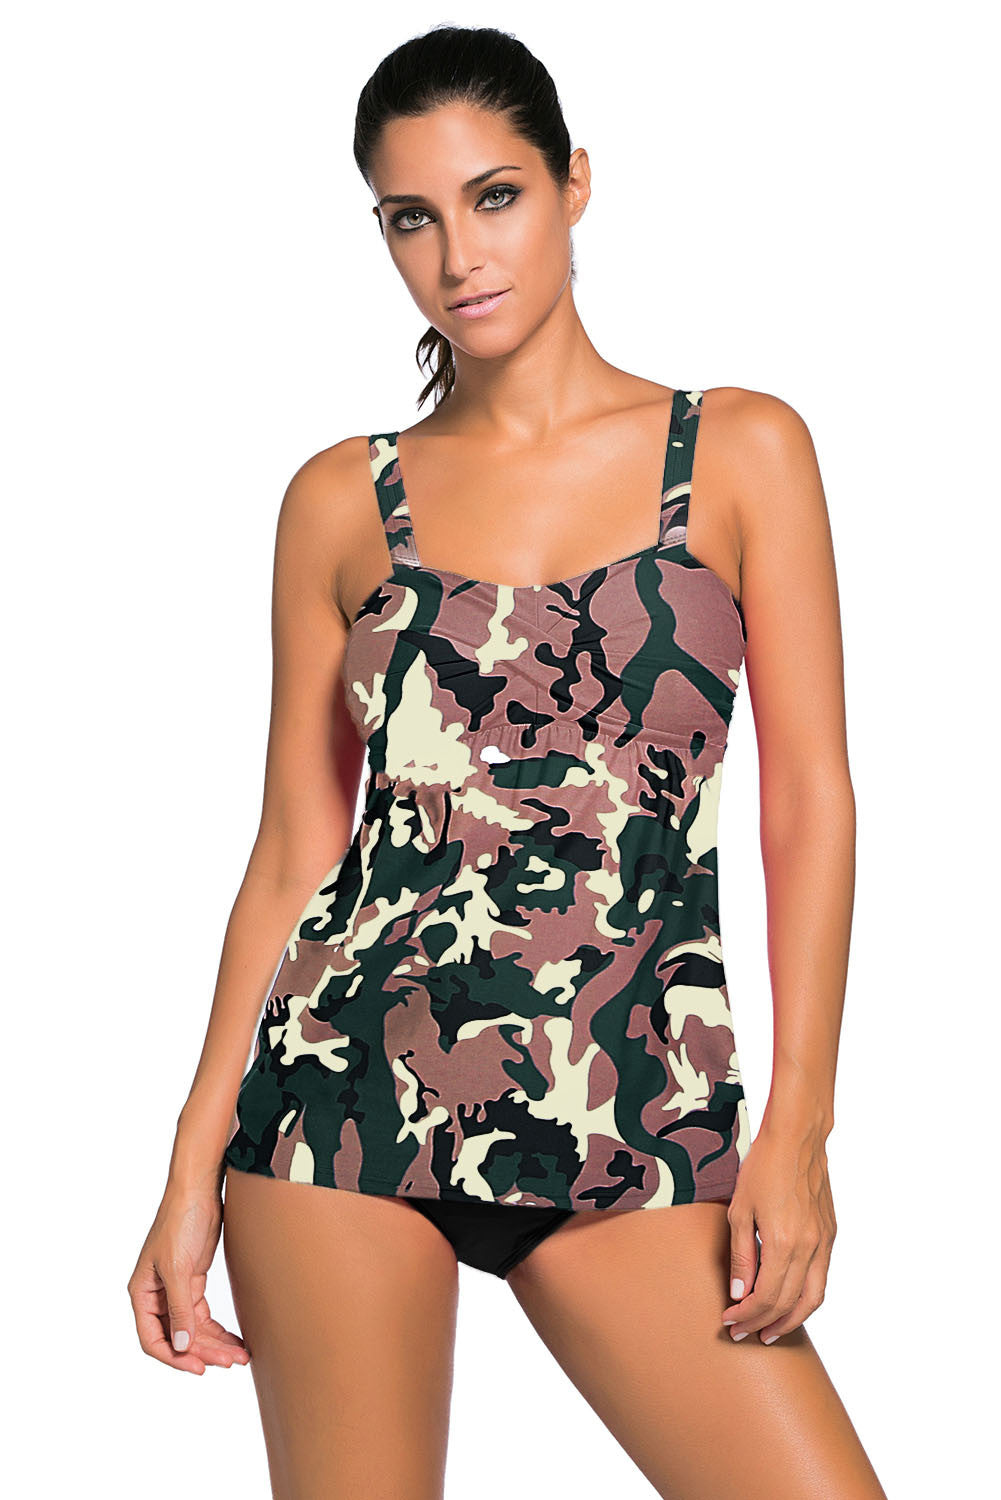 Her Fashion Camouflage Print 2pcs Swing Trendy Tankini Swimsuit